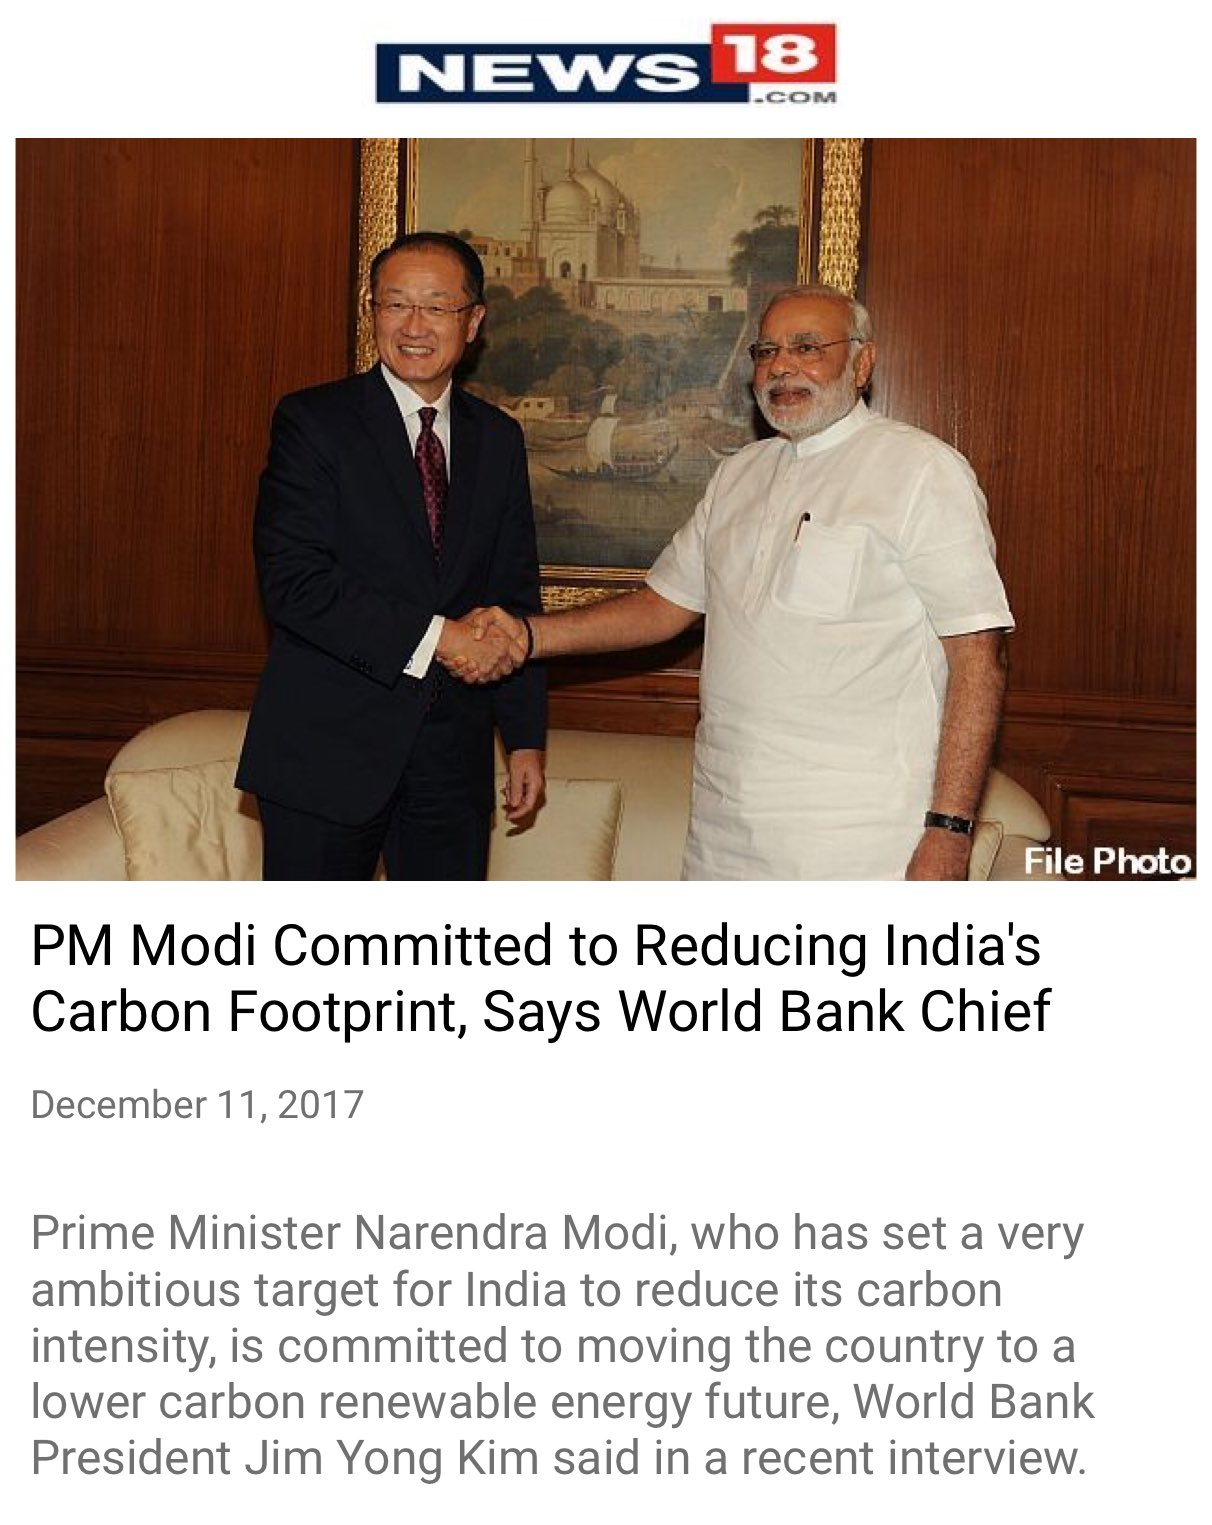 PM Modi committed to reducing India's carbon footprint, says World Bank Chief https://t.co/ZboRN5RckS  via NMApp https://t.co/6rZDr0x3g9